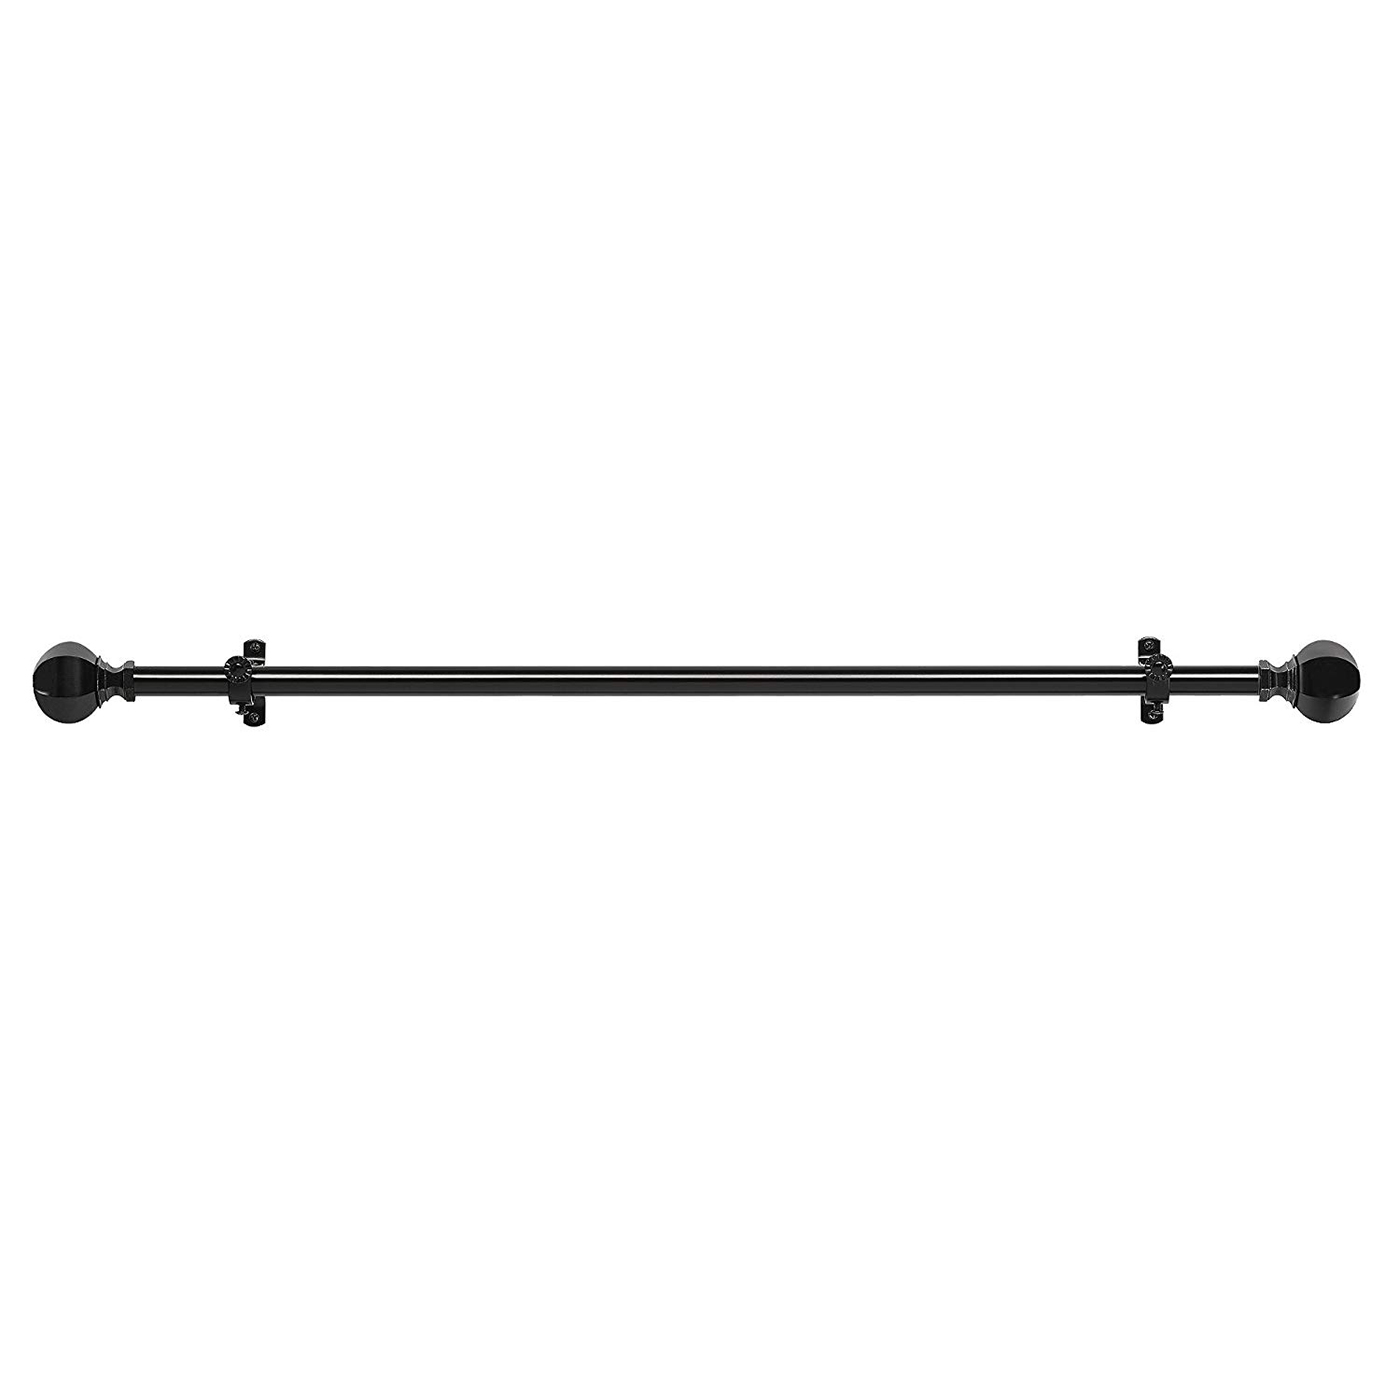 Curtain-Rod-Decorative-Telescopic-Cafe-Window-Drapery-Rods-Set-w-Modern-Finials thumbnail 15